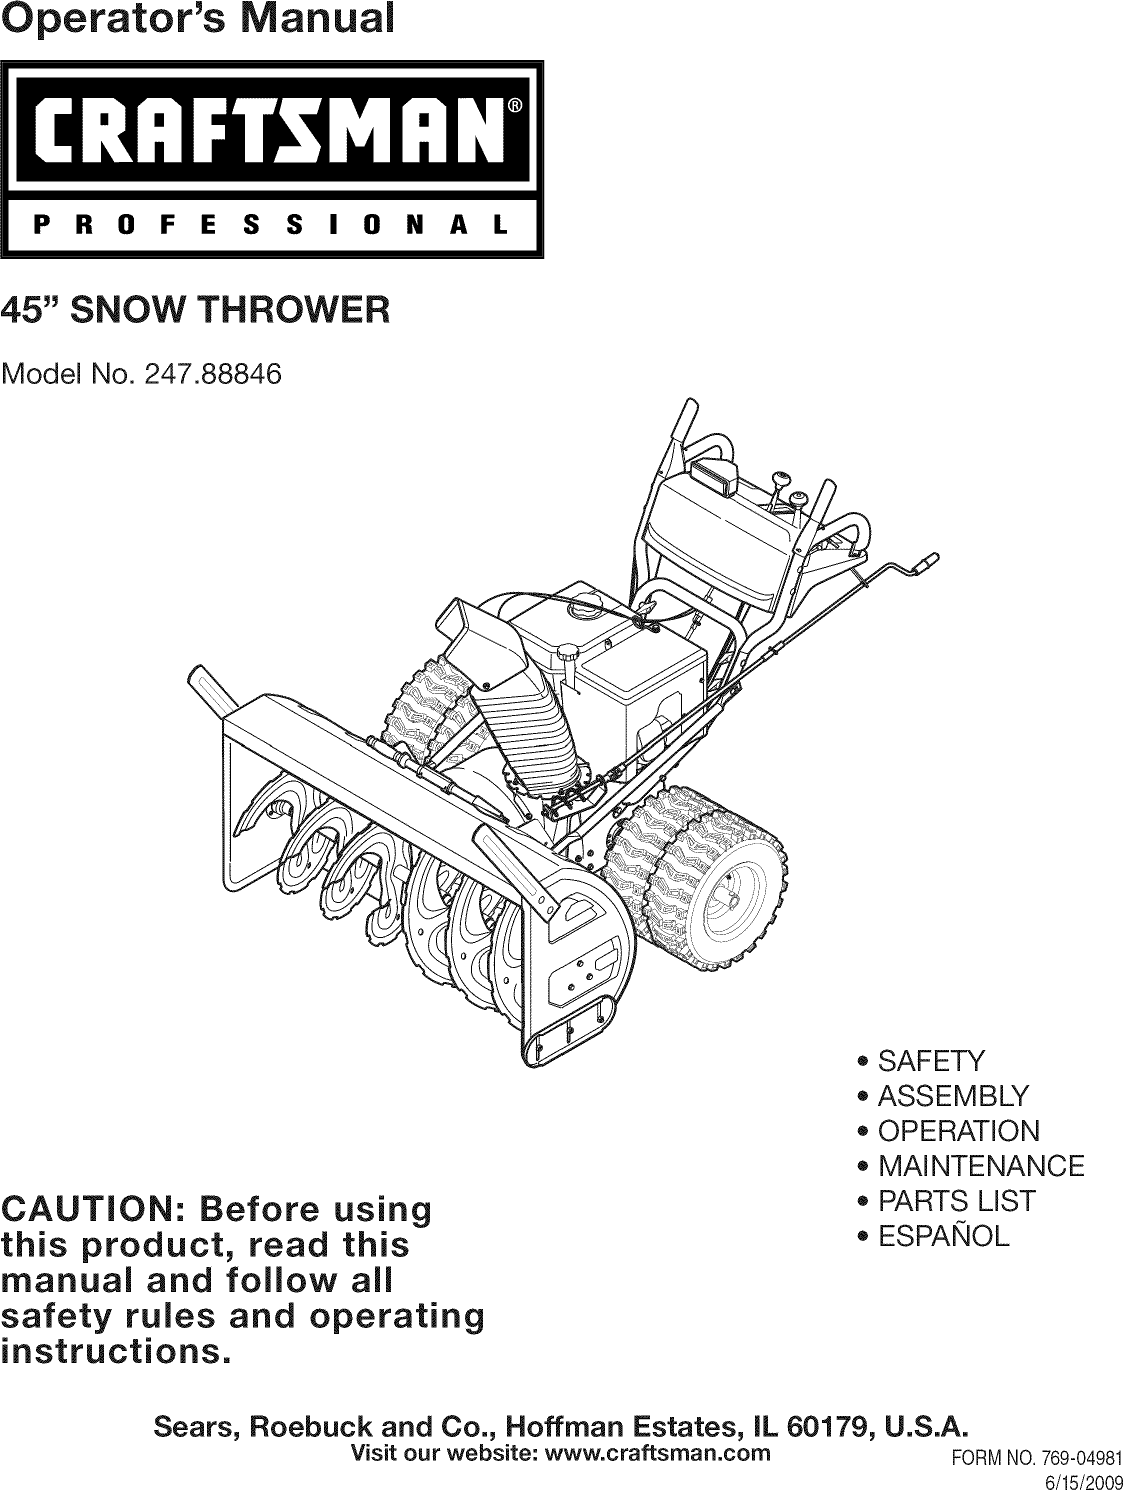 Craftsman 24788846 User Manual SNOW THROWER Manuals And